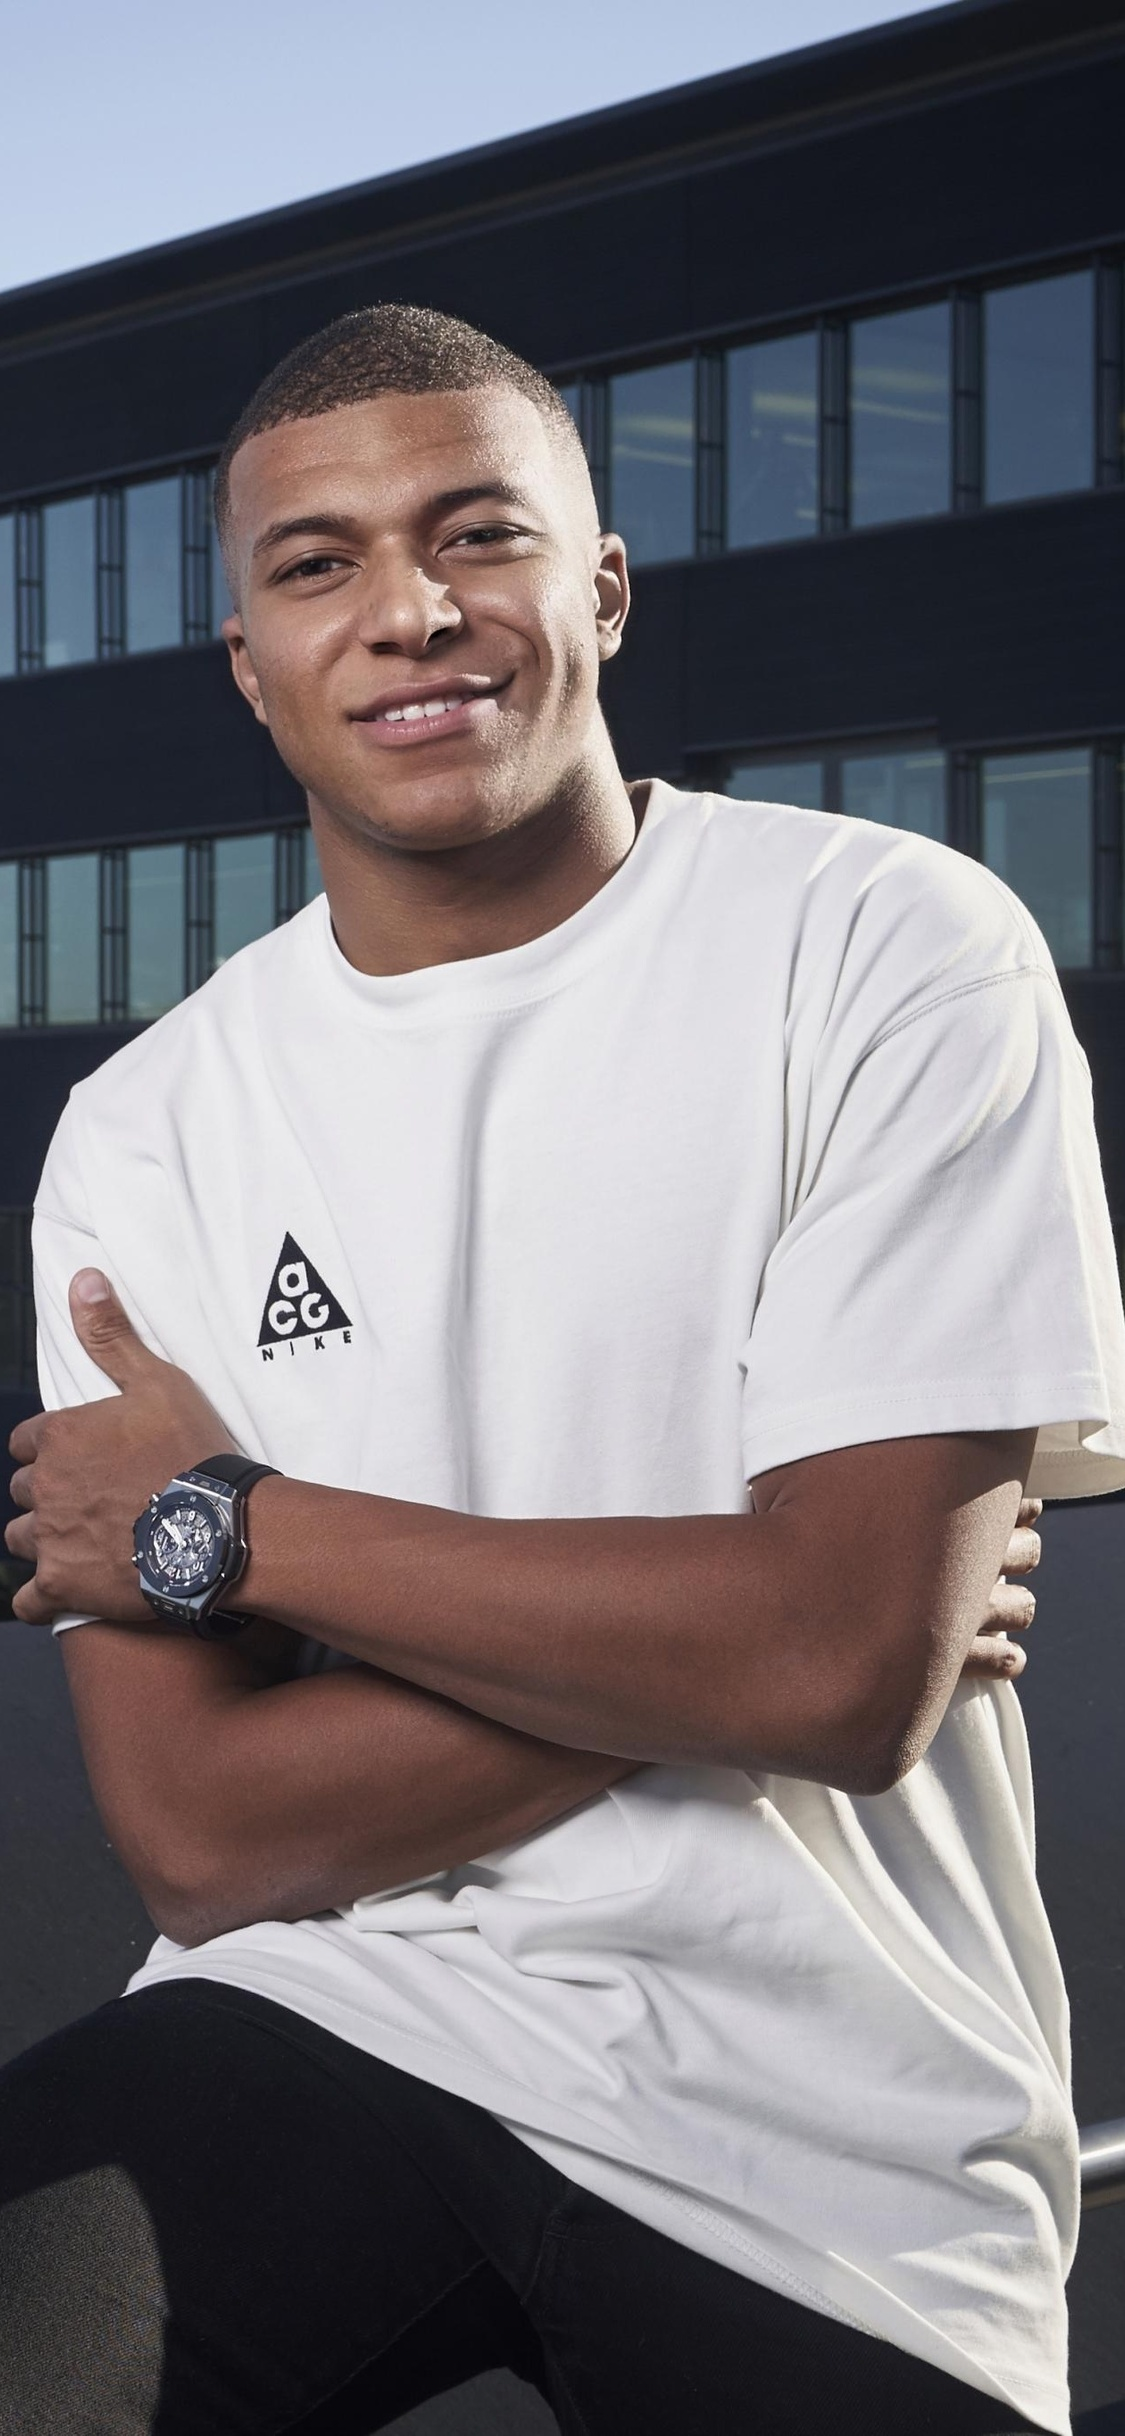 kylian-mbappe-player-xw.jpg